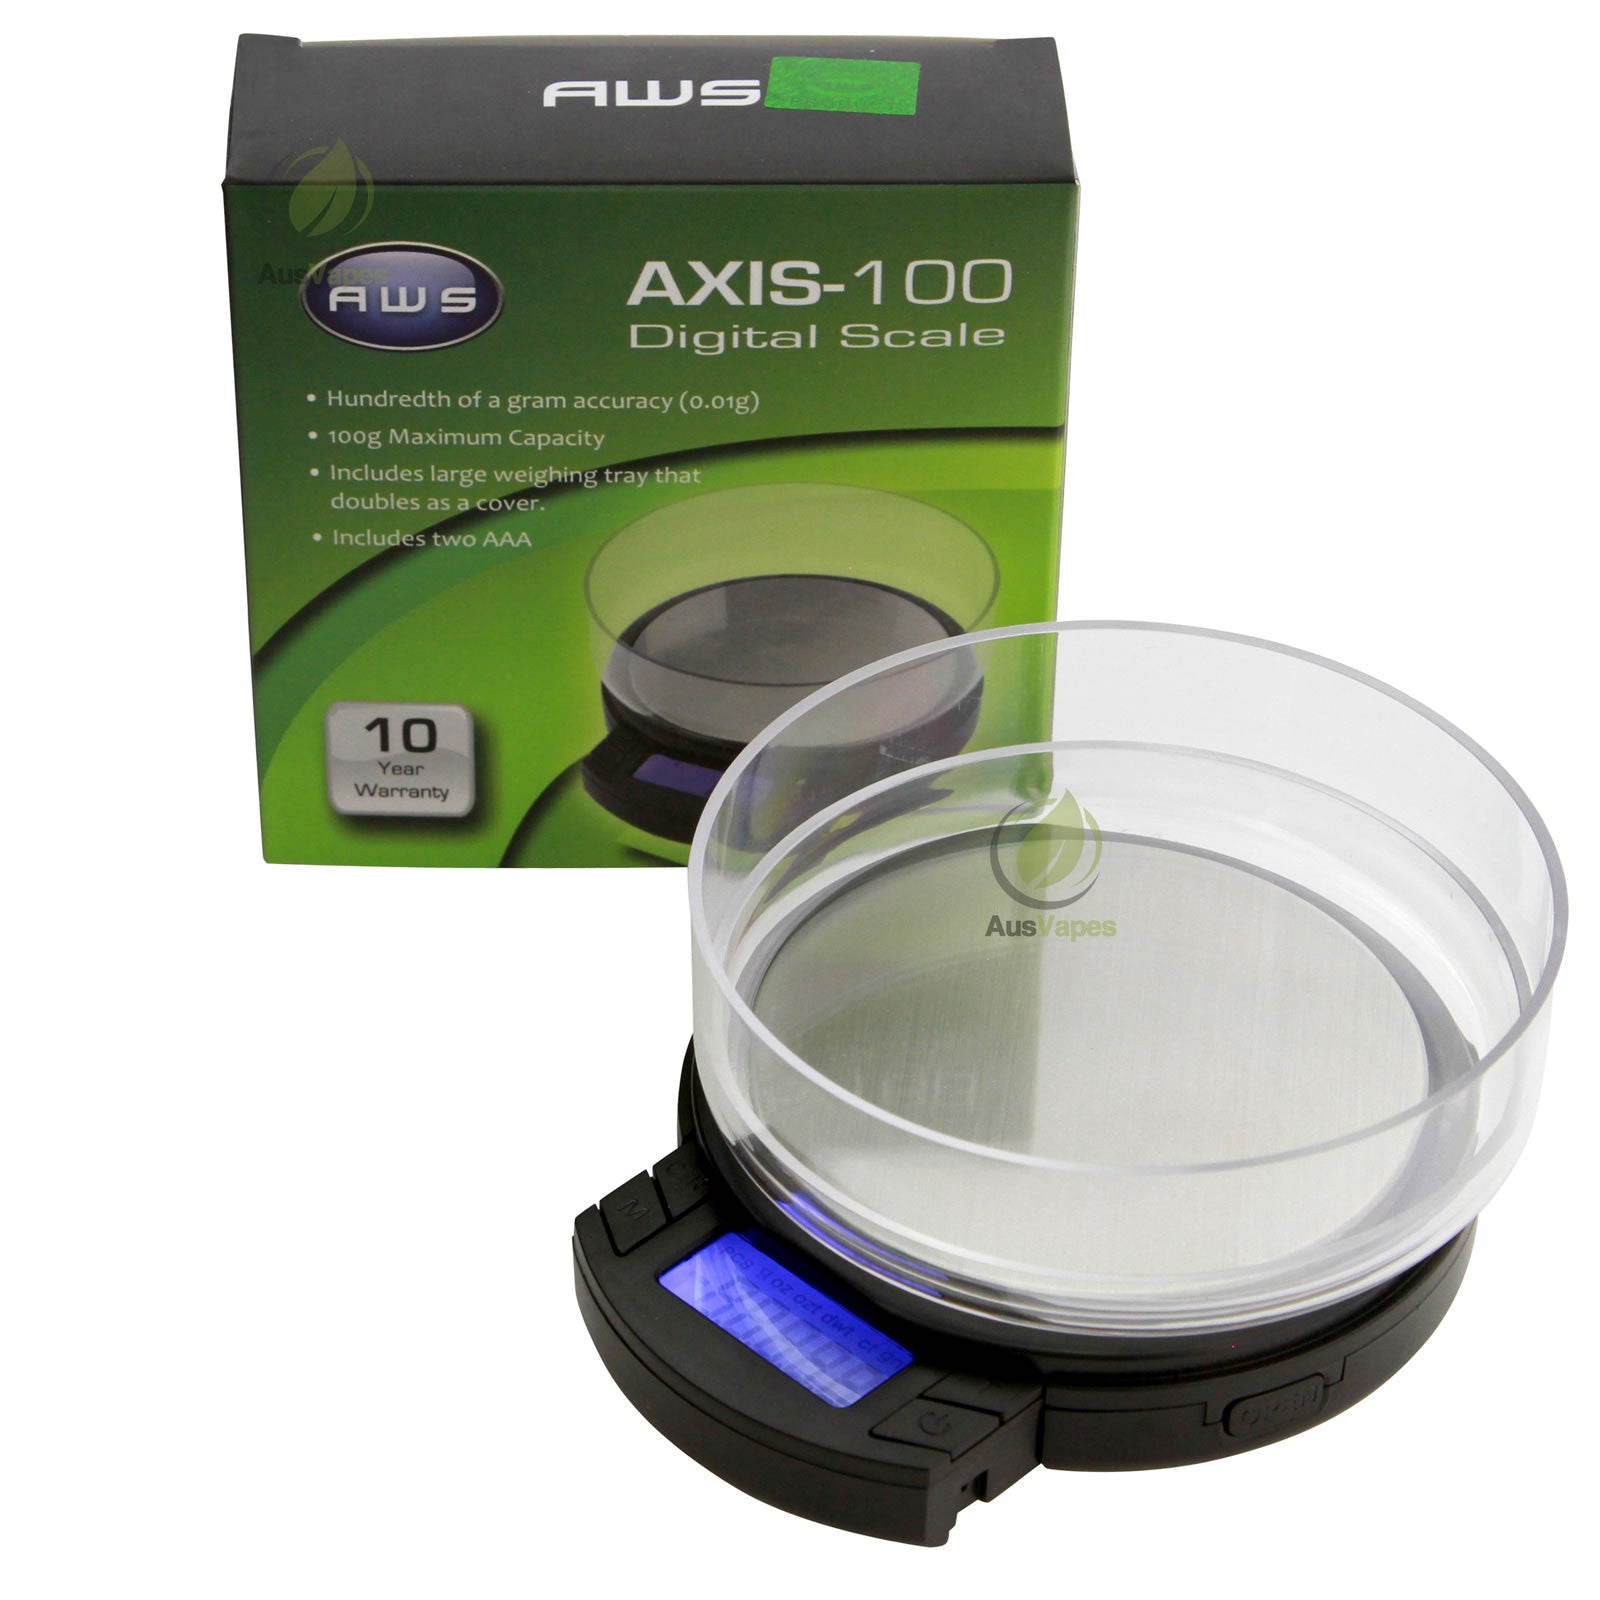 DISCONTINUED AWS AXIS-100 Digital Pocket Scale 100g x 0.01g